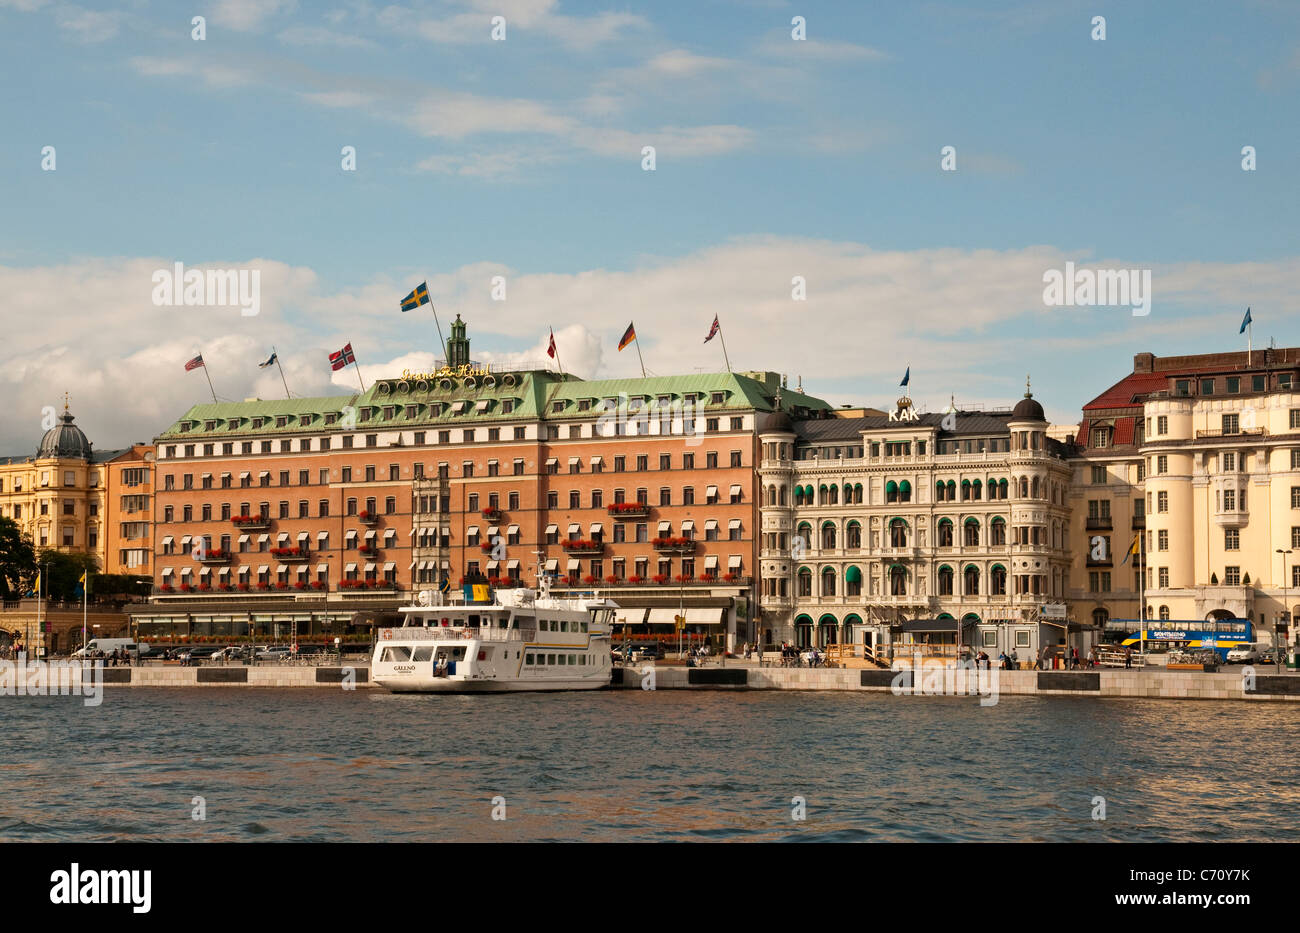 Grand Hotel on the waterfront in Stockholm, Sweden - Stock Image